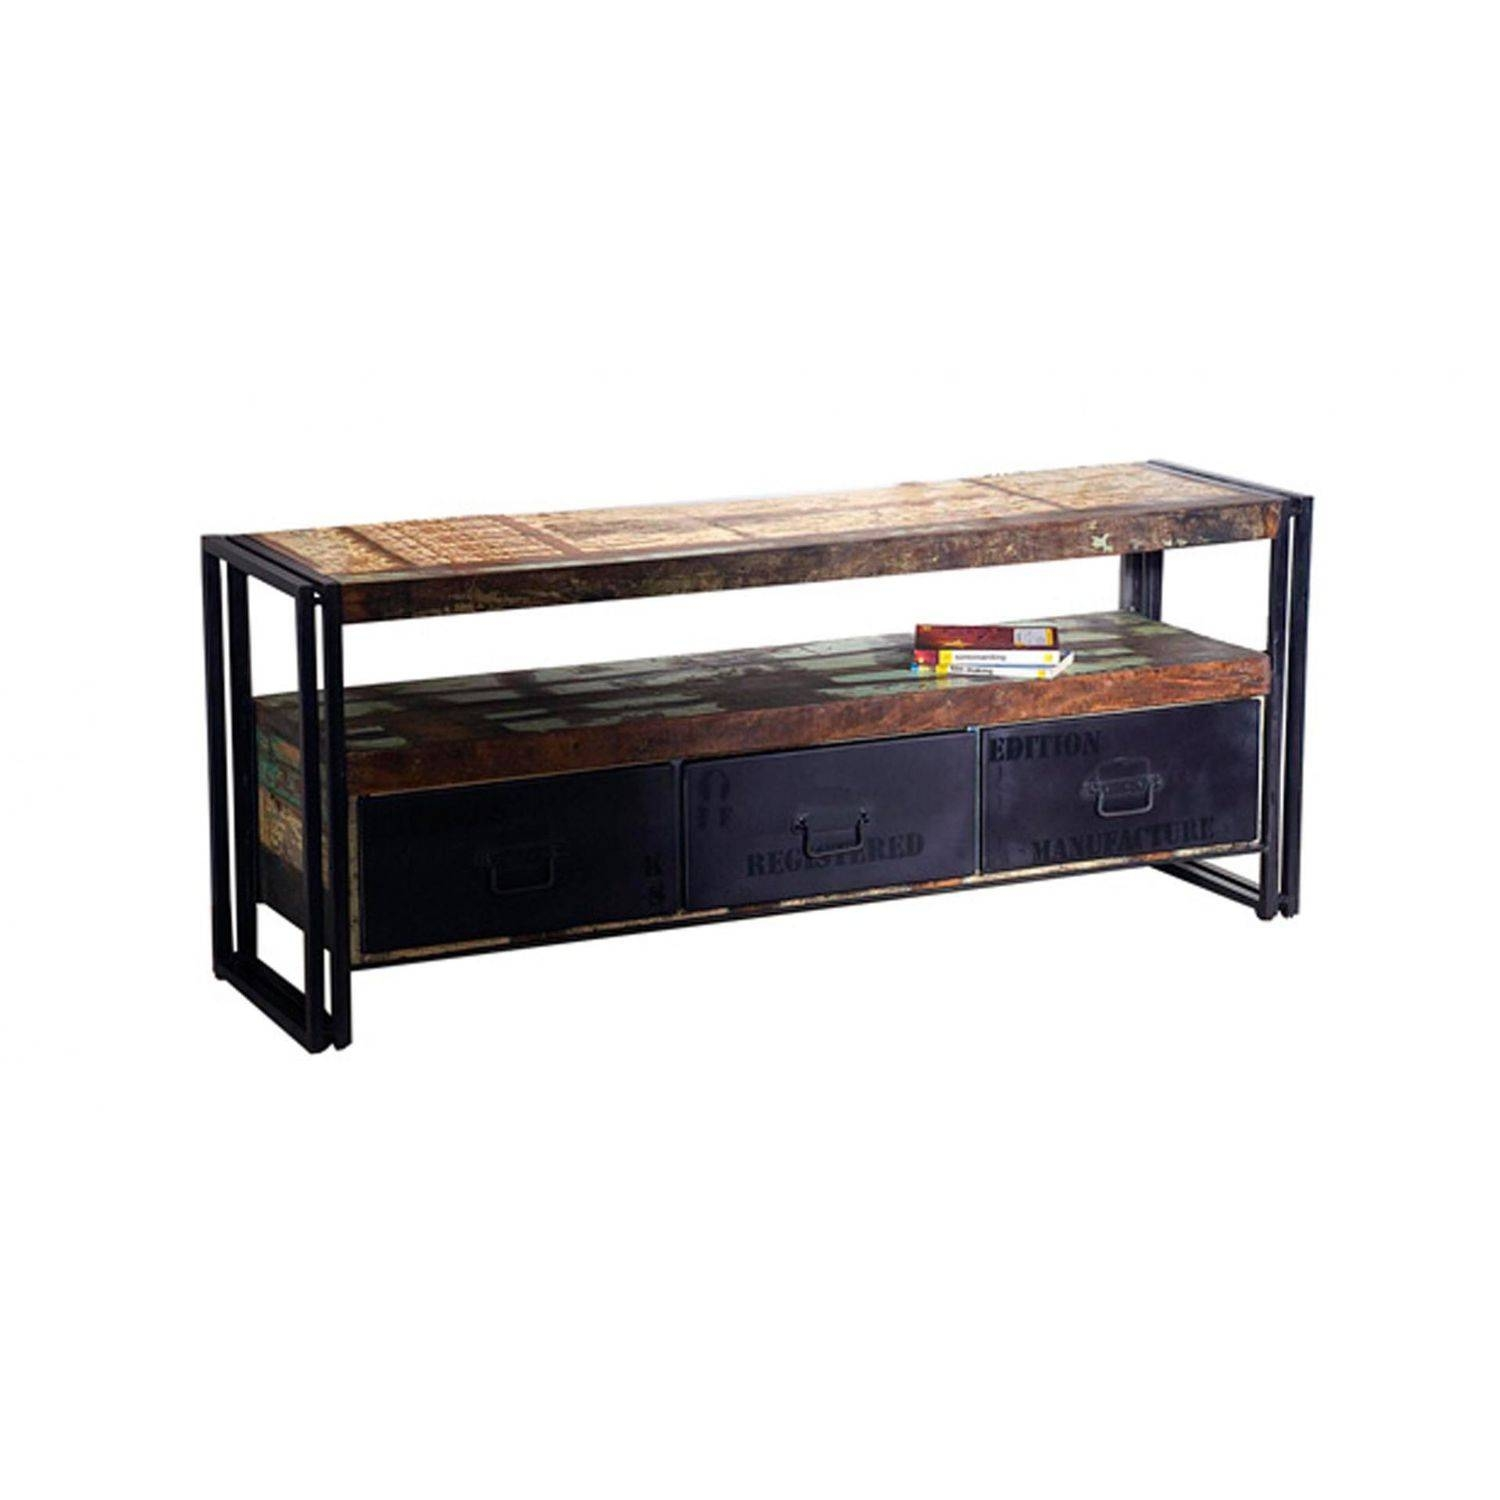 Industrial Style Sideboard Table / Wooden / Metal / Rectangular inside Metal Sideboard Furniture (Image 23 of 30)